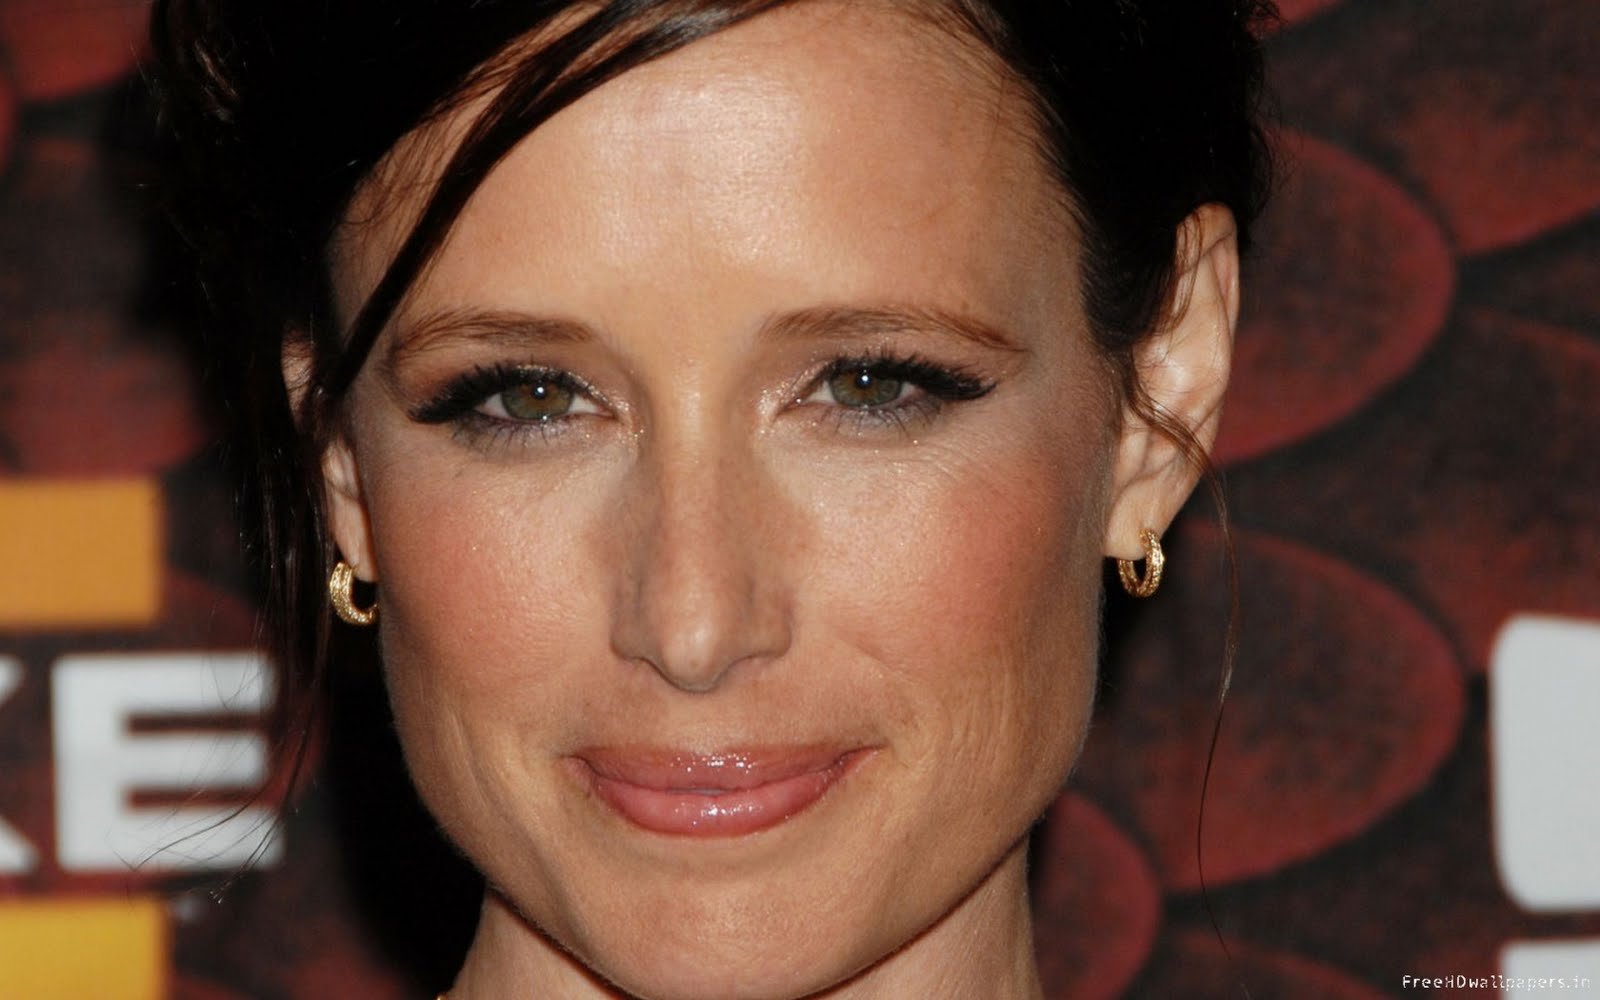 http://4.bp.blogspot.com/-GMVBsD89M0w/Th_1SOwmW7I/AAAAAAAARUI/mexwQI2tv1M/s1600/shawnee-smith-walls.jpg